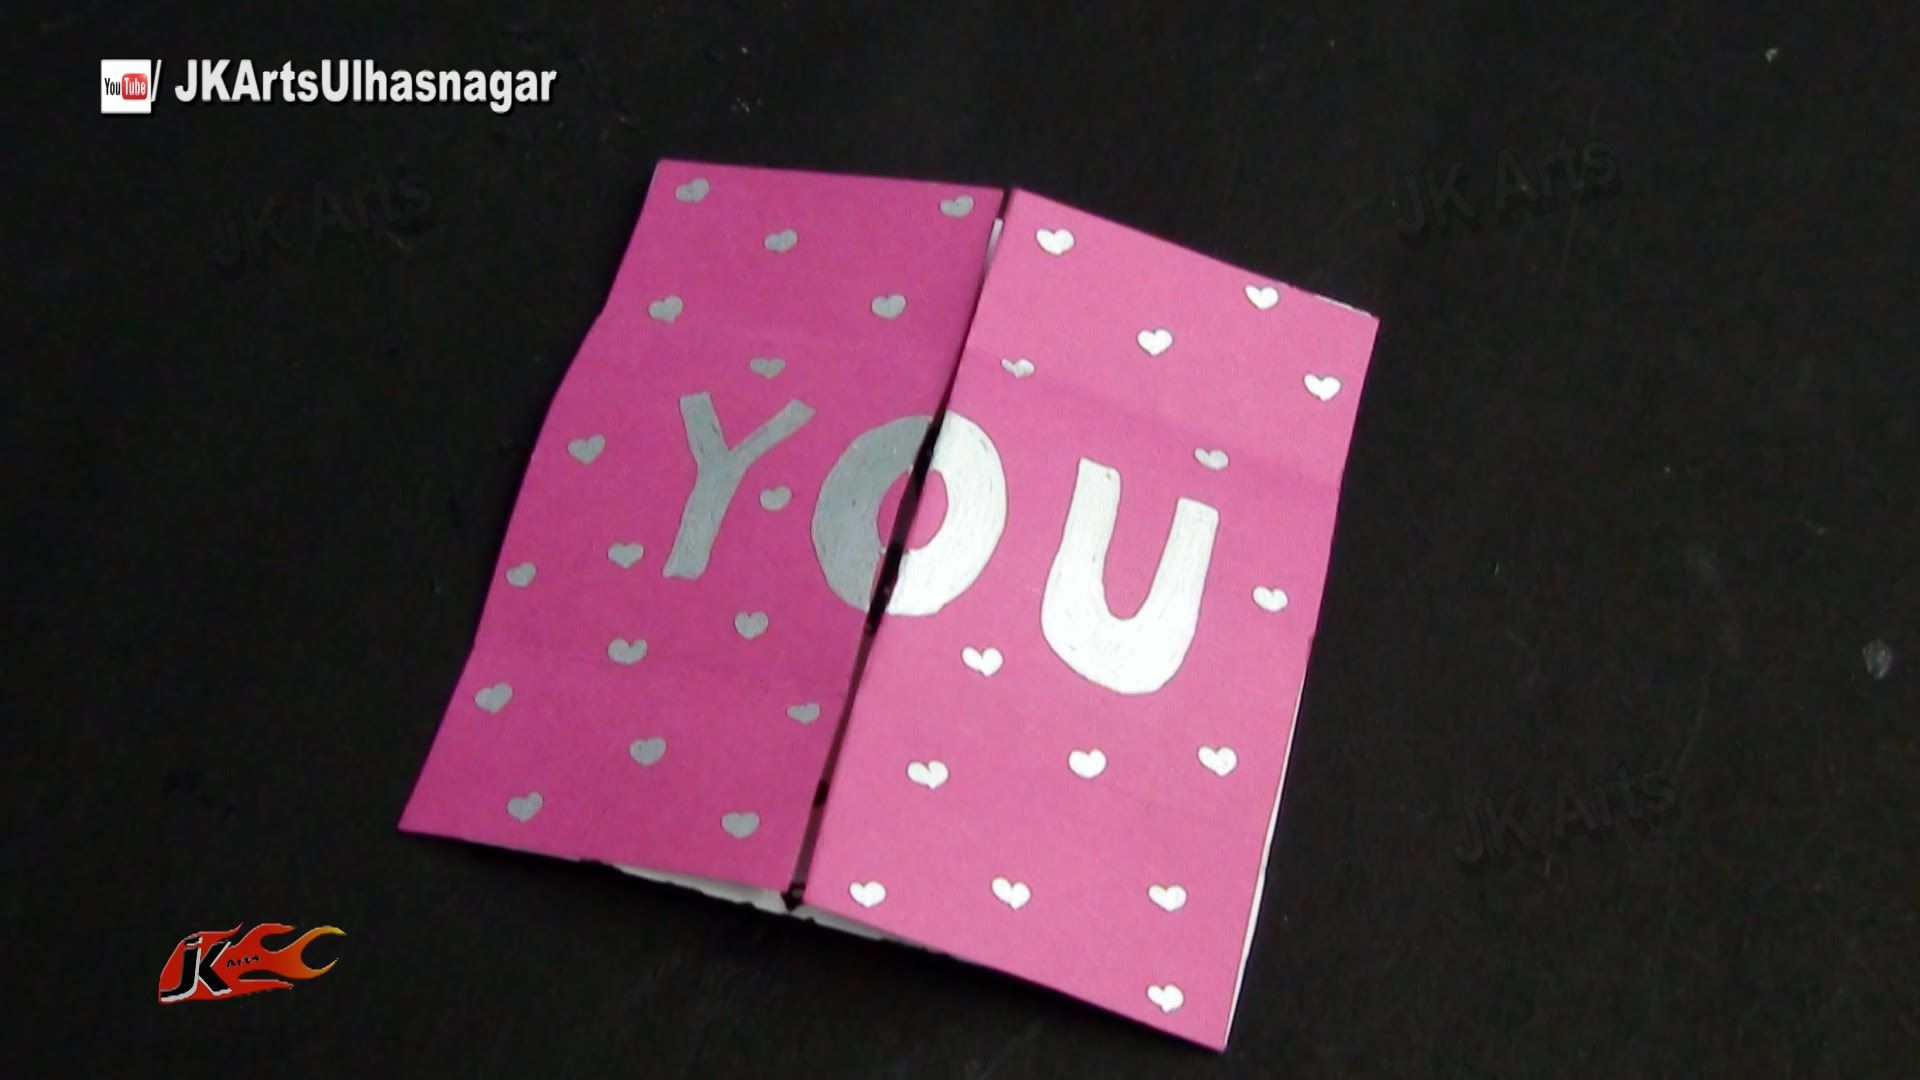 Easy endless love valentine card tutorial how to make jk arts easy endless love valentine card tutorial how to make jk arts 874 kristyandbryce Gallery